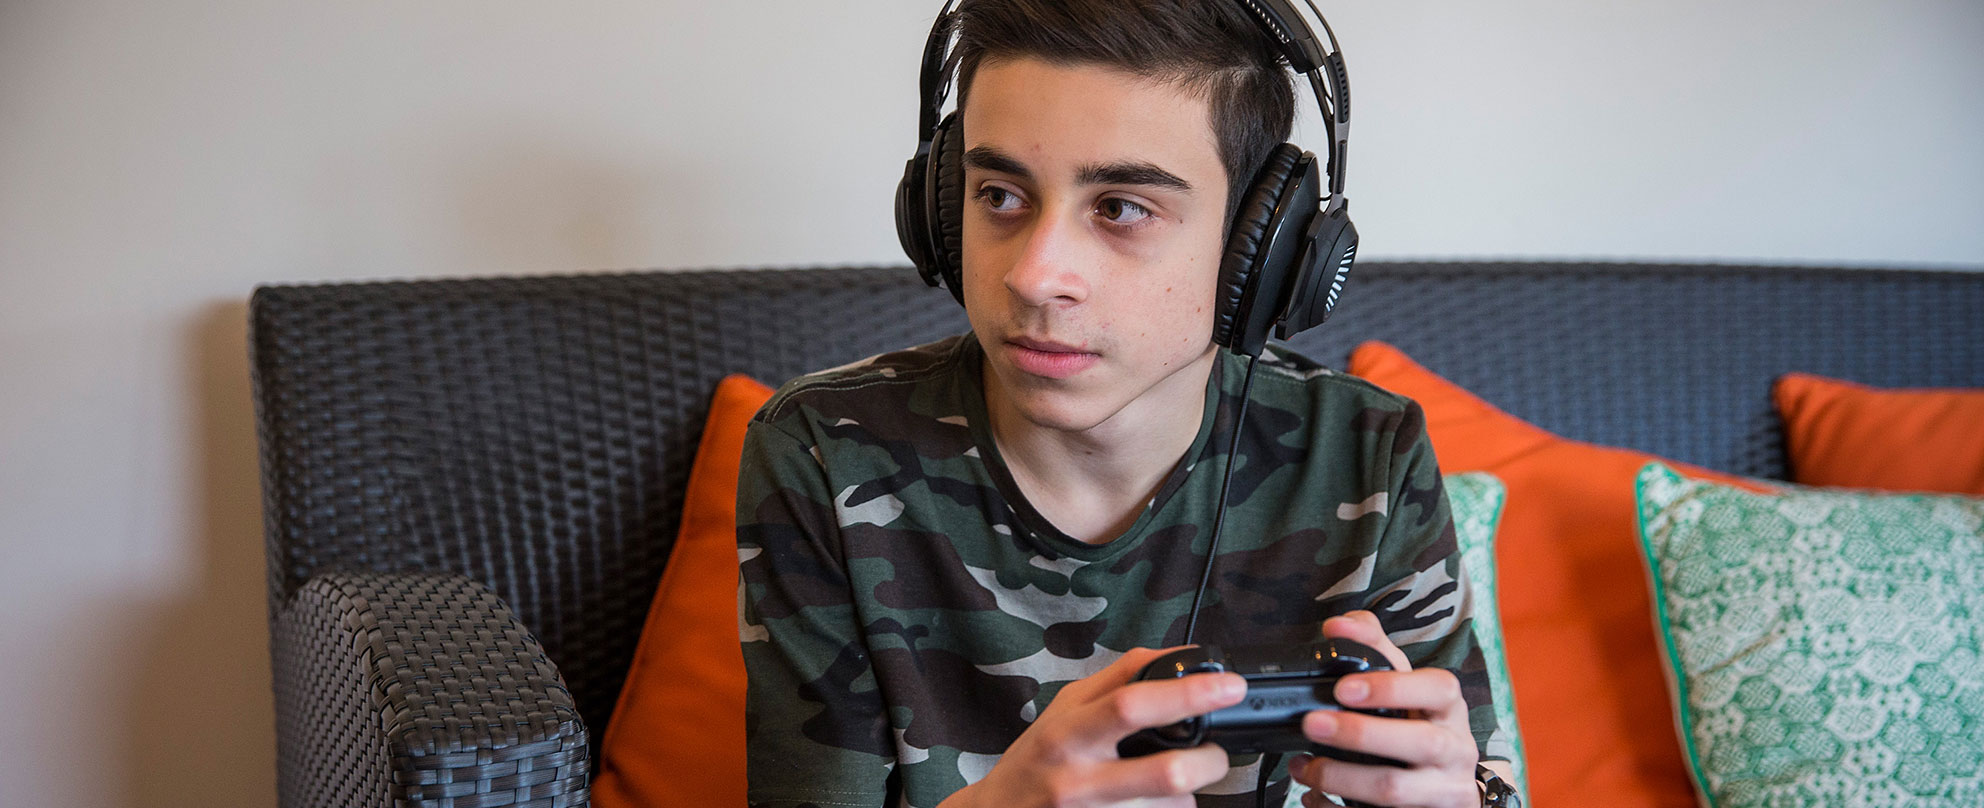 Photo of a teen boy in a camouflage t-shirt wearing headphones and operating the video game controller in his hands while sitting on a couch and looking off to the side, presumably at a screen where a video game is playing.